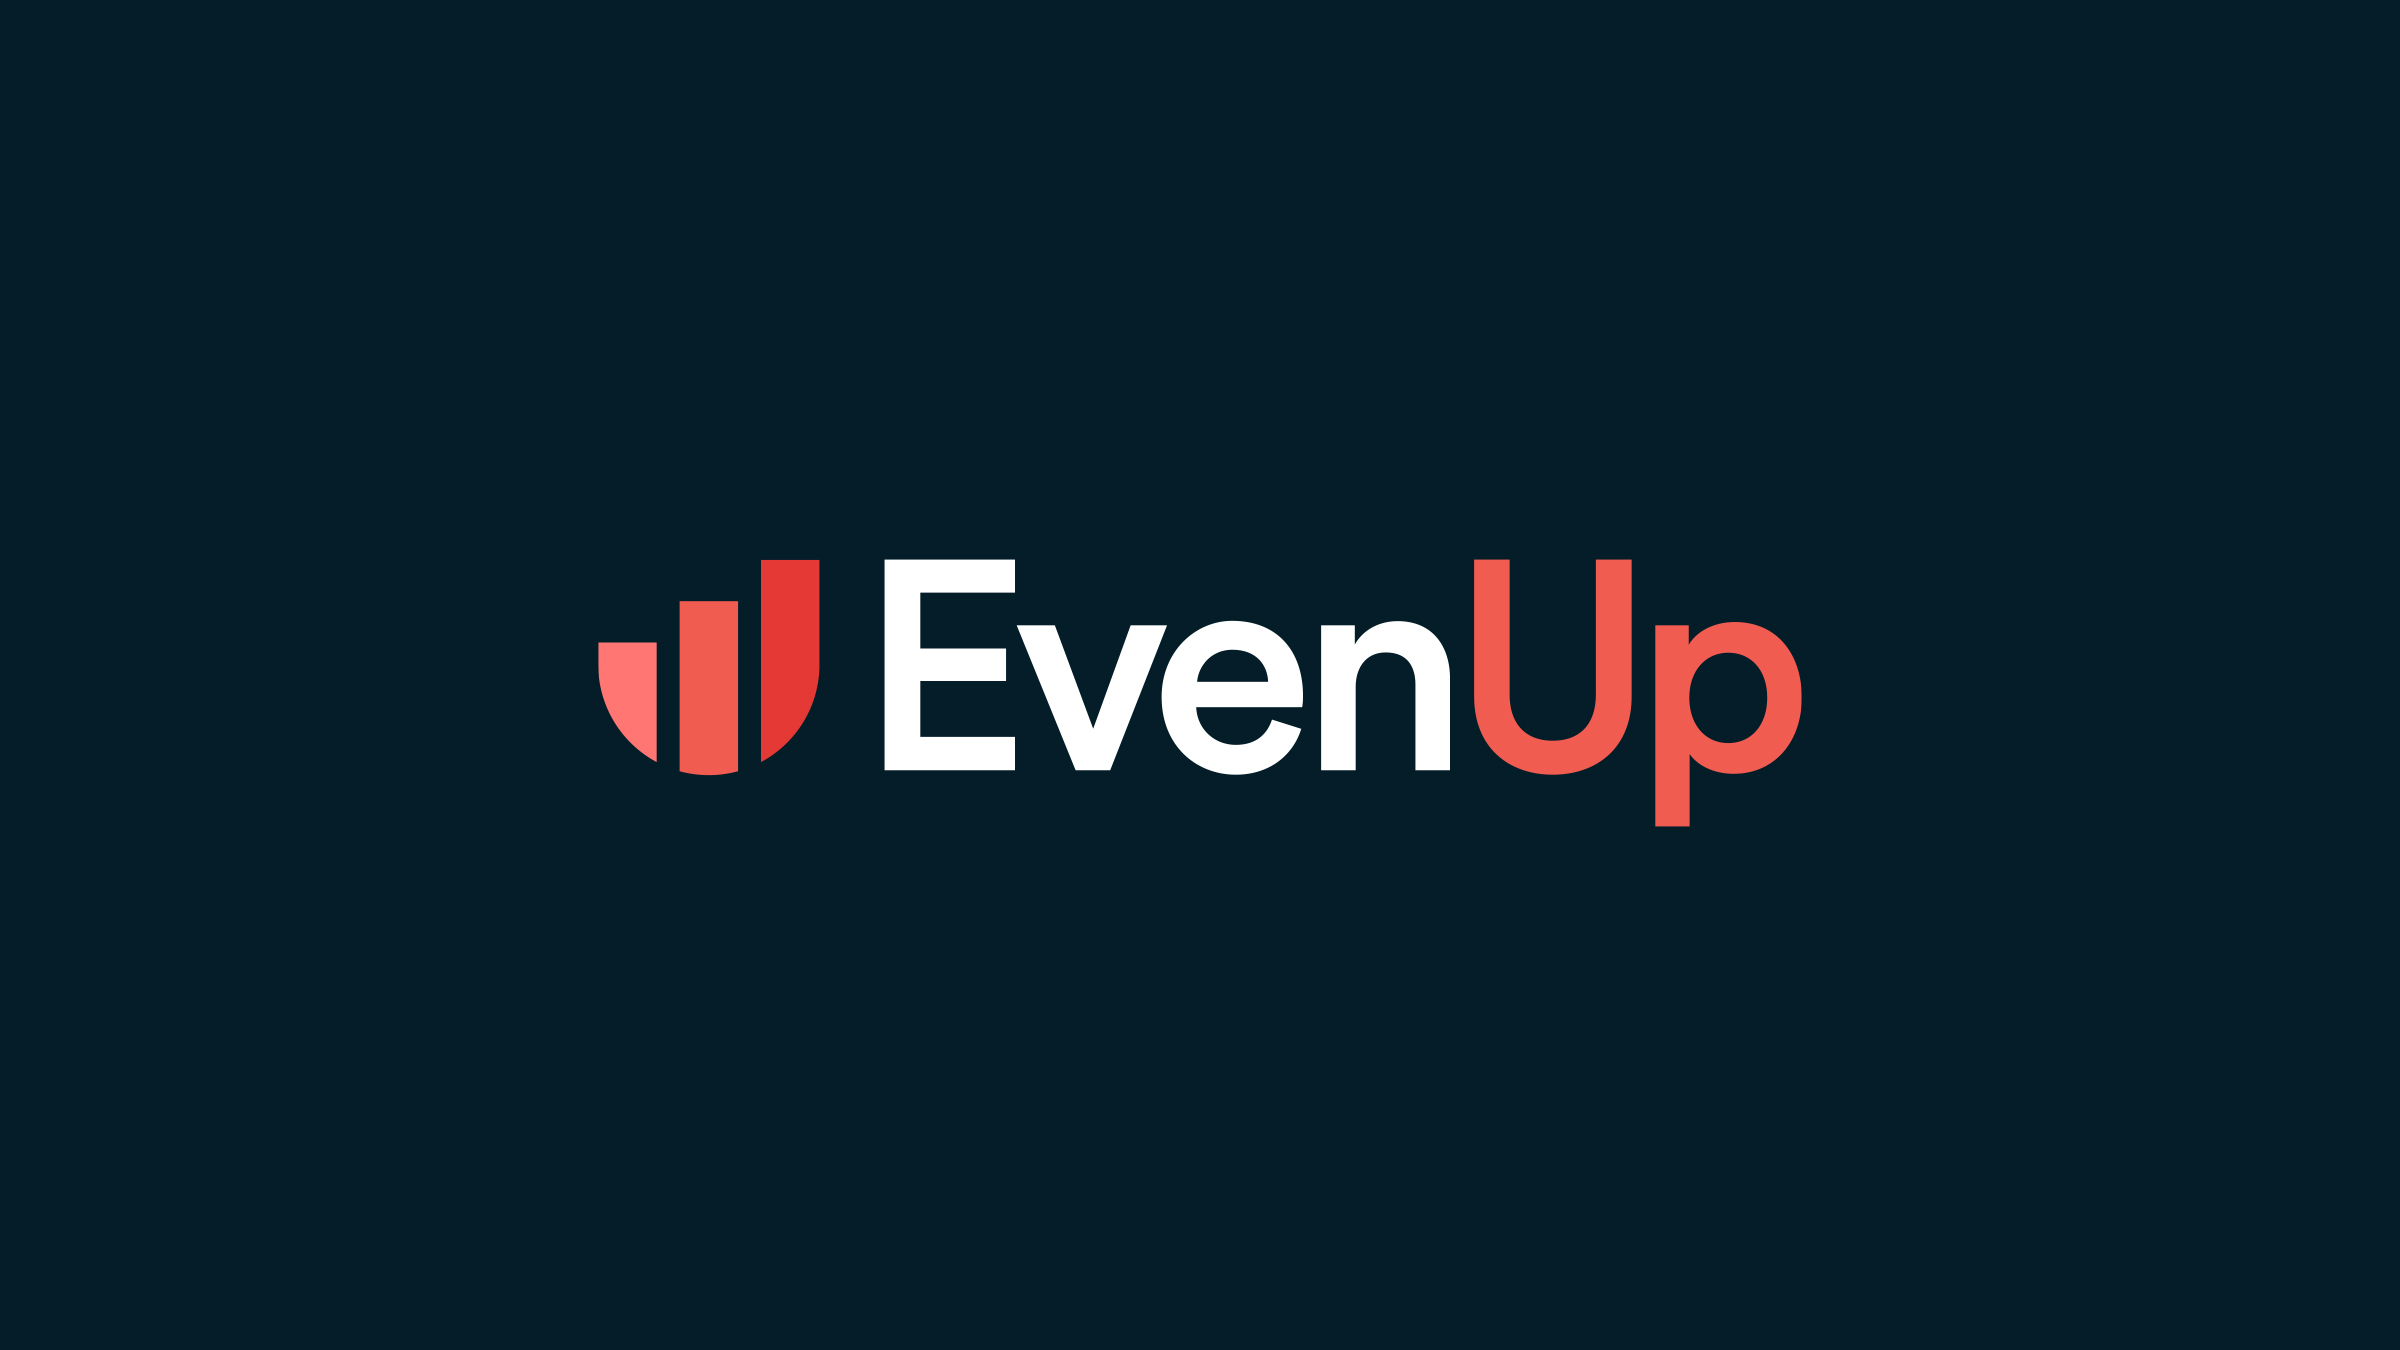 EvenUp Law brand logo preview image